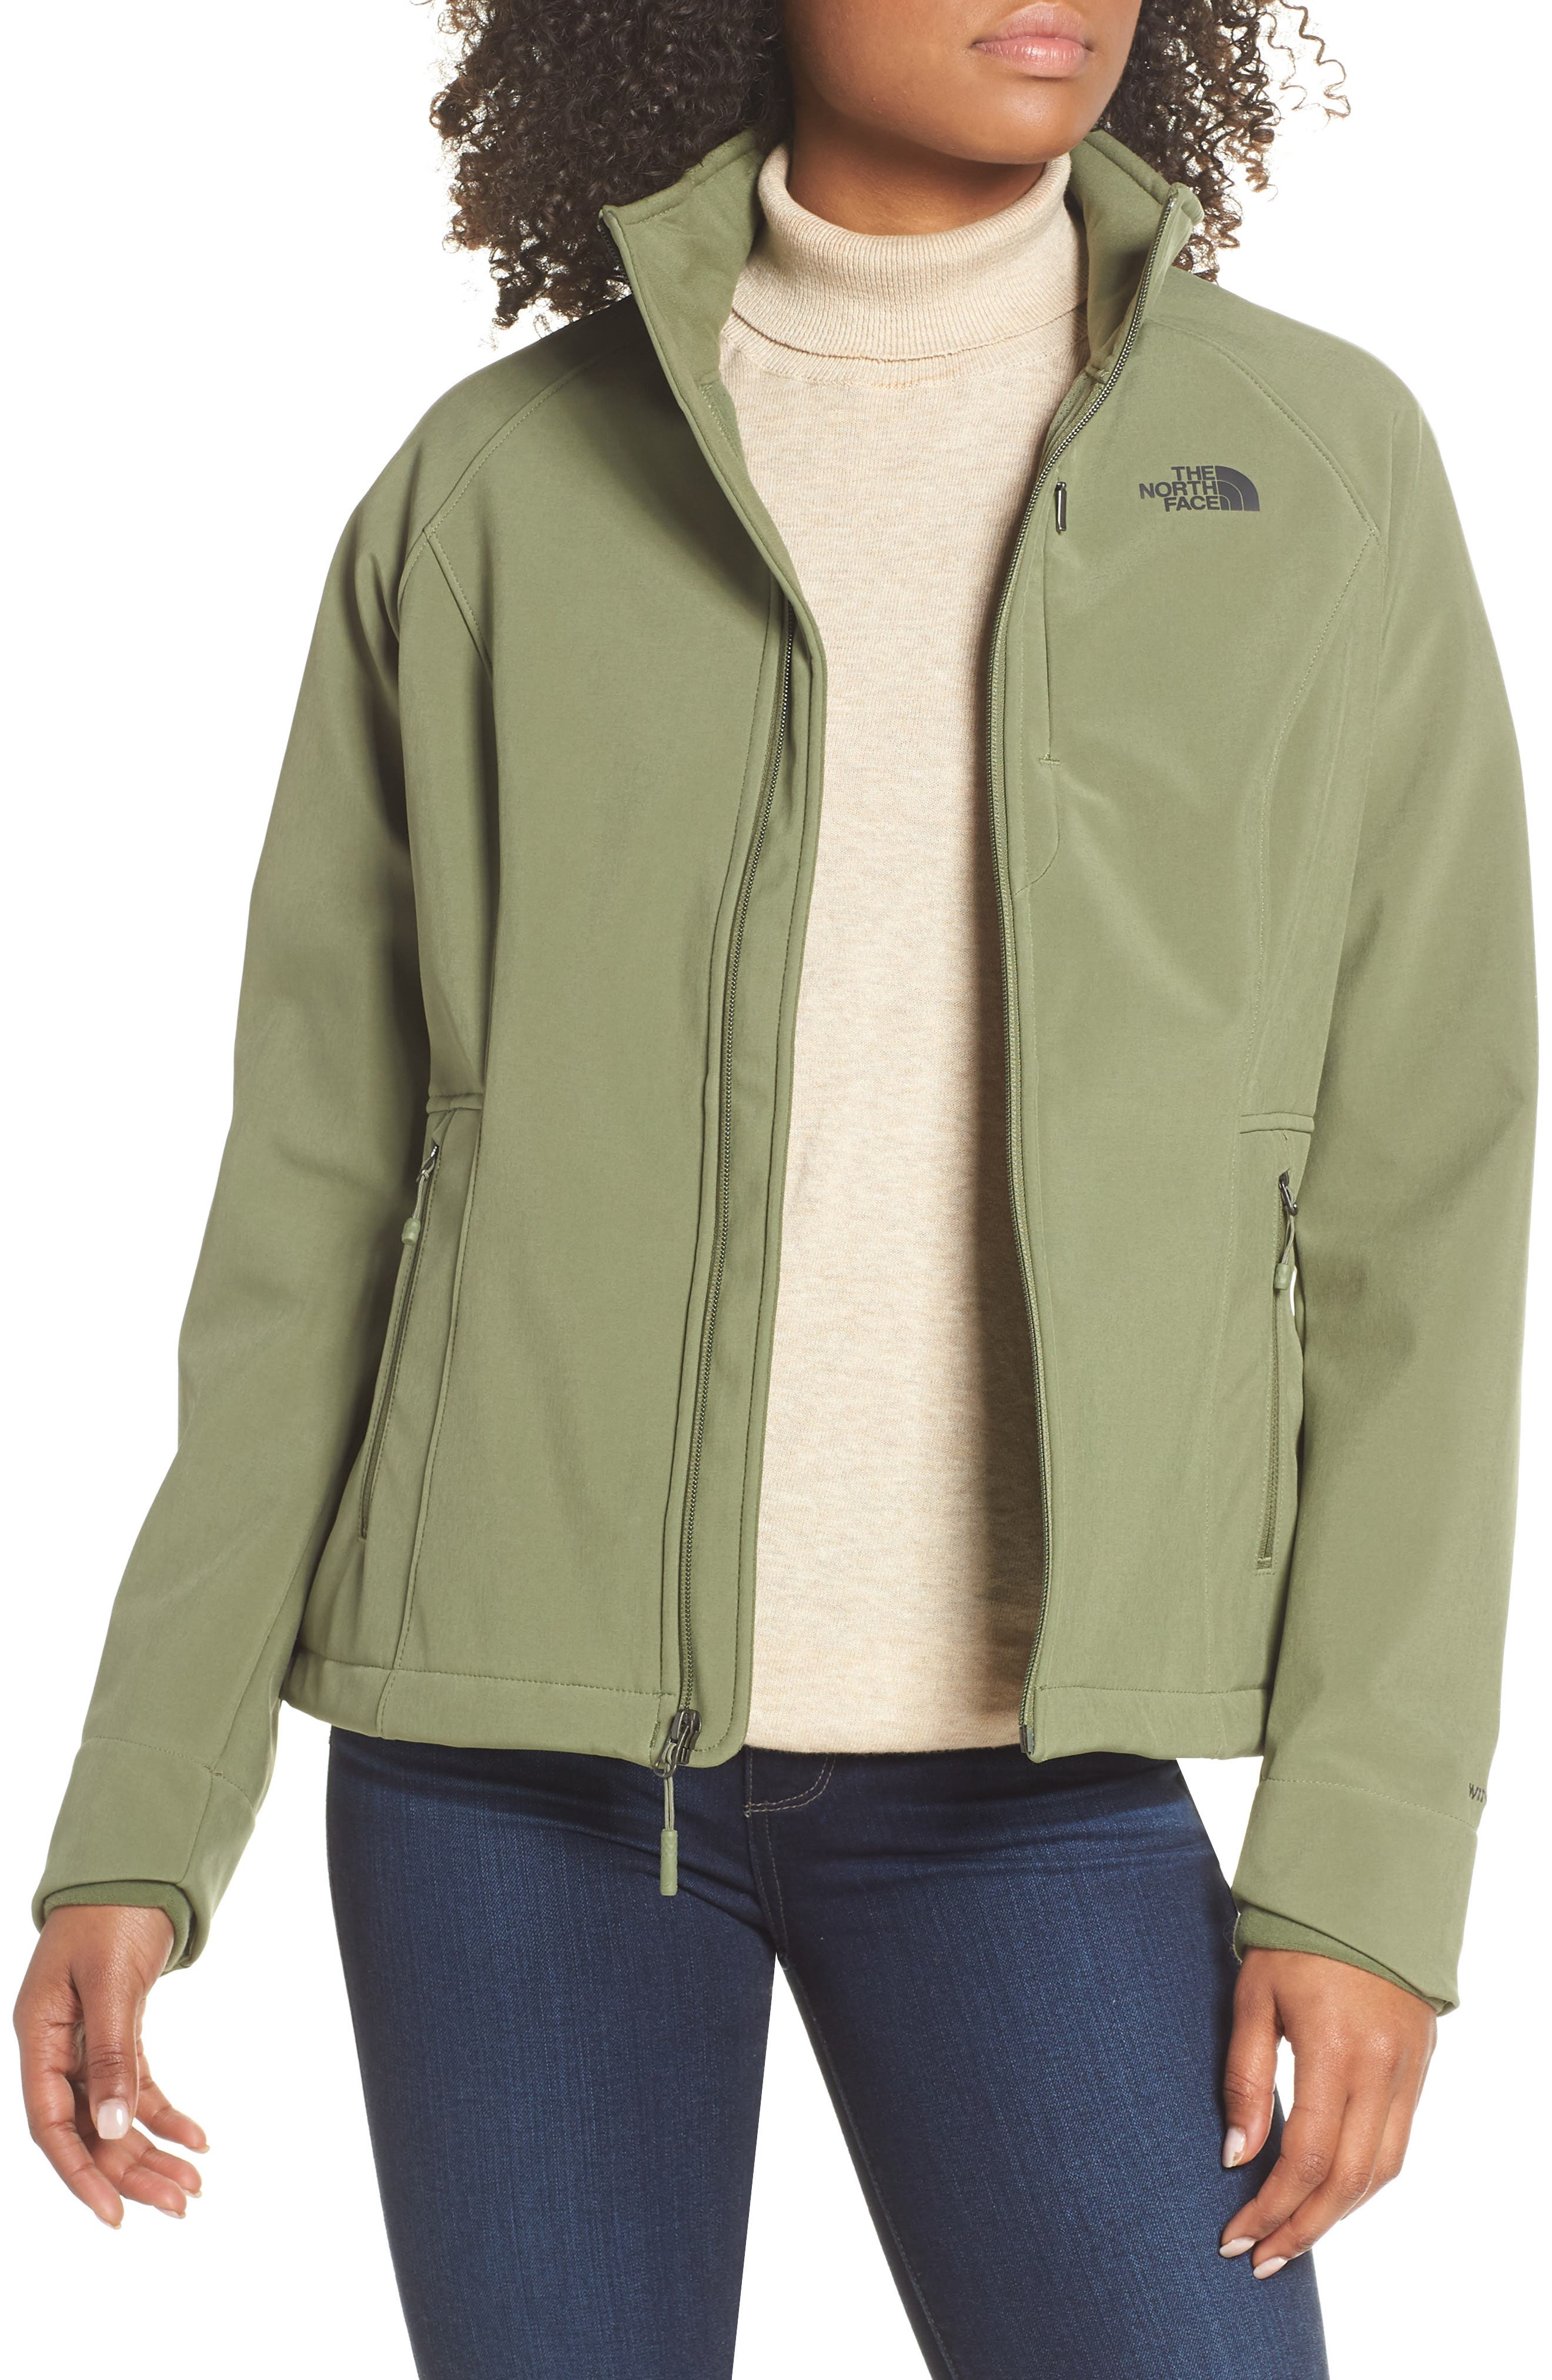 THE NORTH FACE 'Apex Bionic 2' Jacket, Main, color, 301